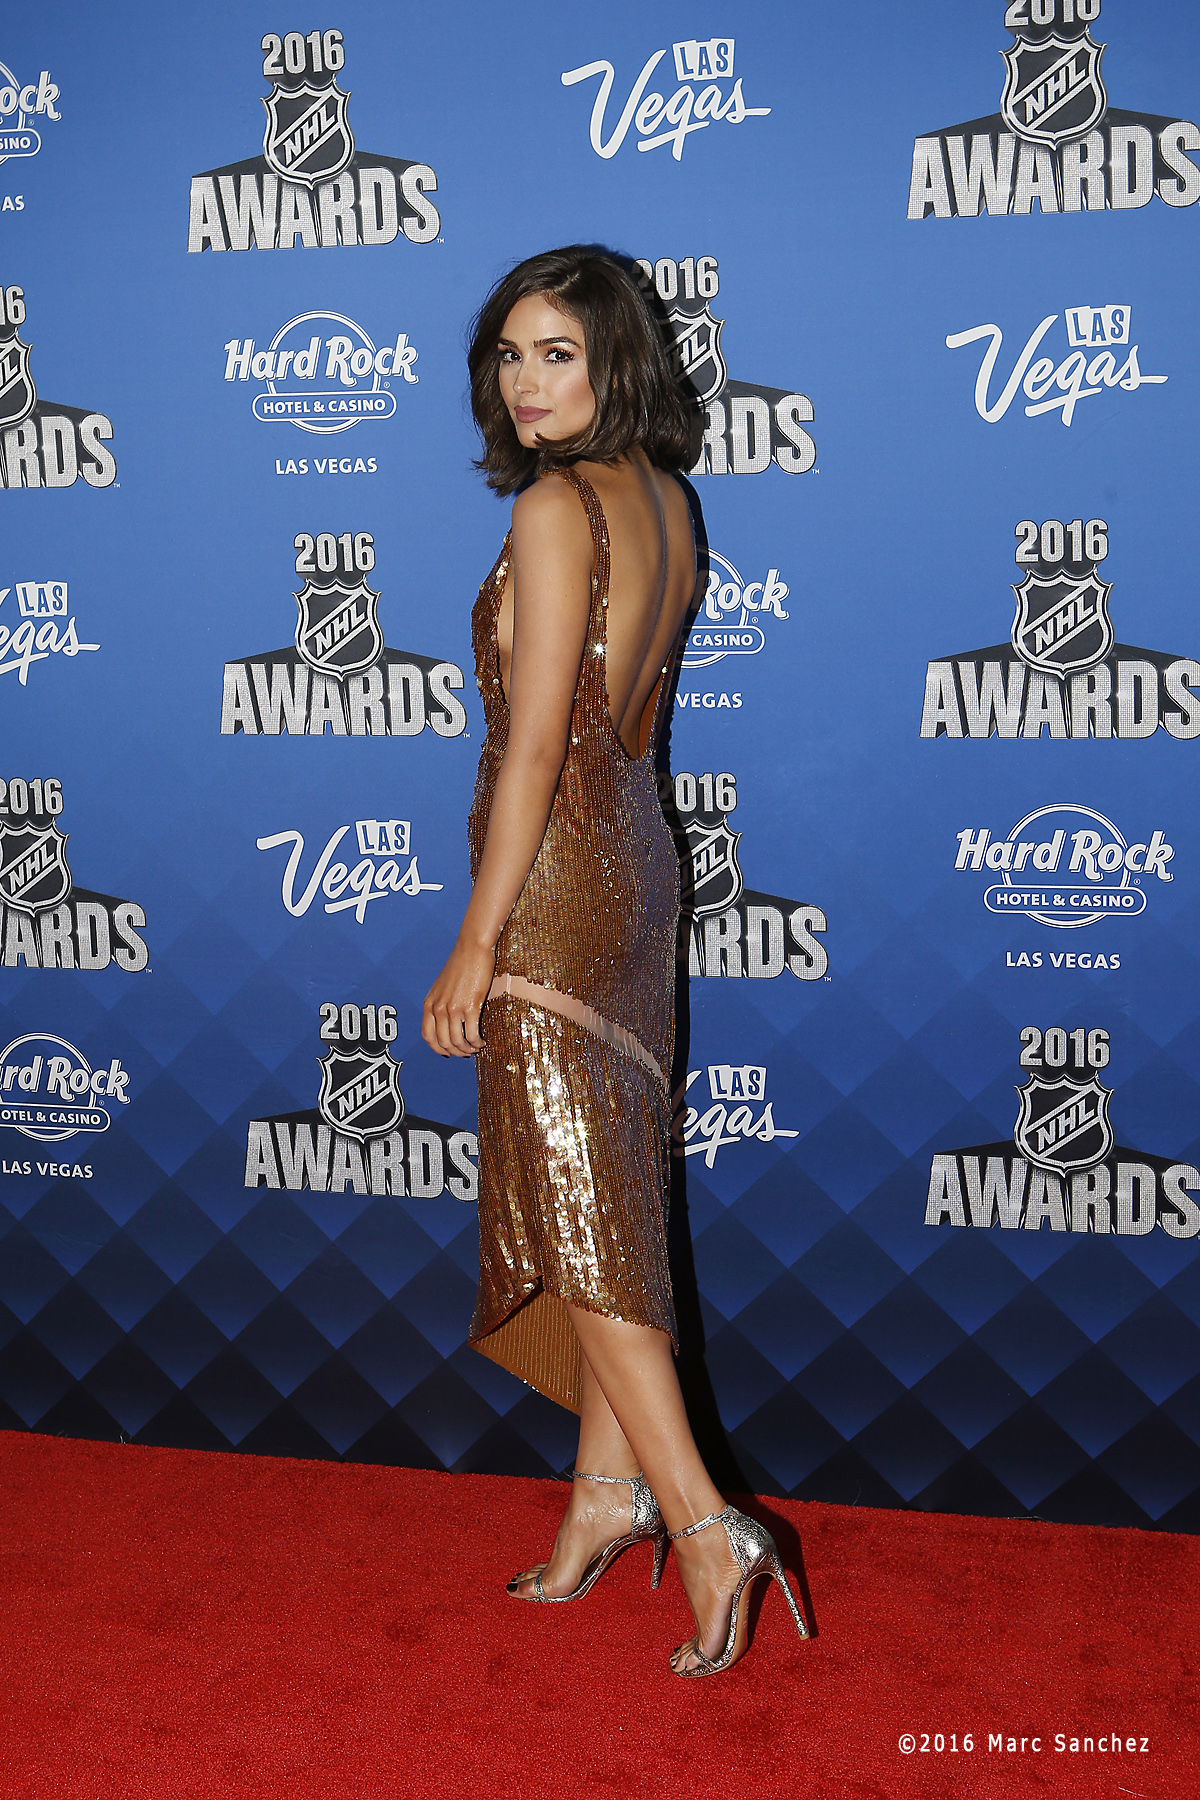 2016 June 22: Entertainment broadcaster Oliva Culpo poses for a photograph on the red carpet during the 2016 NHL Awards at the Hard Rock Hotel and Casino in Las Vegas, Nevada. (Photo by Marc Sanchez/Icon Sportswire)